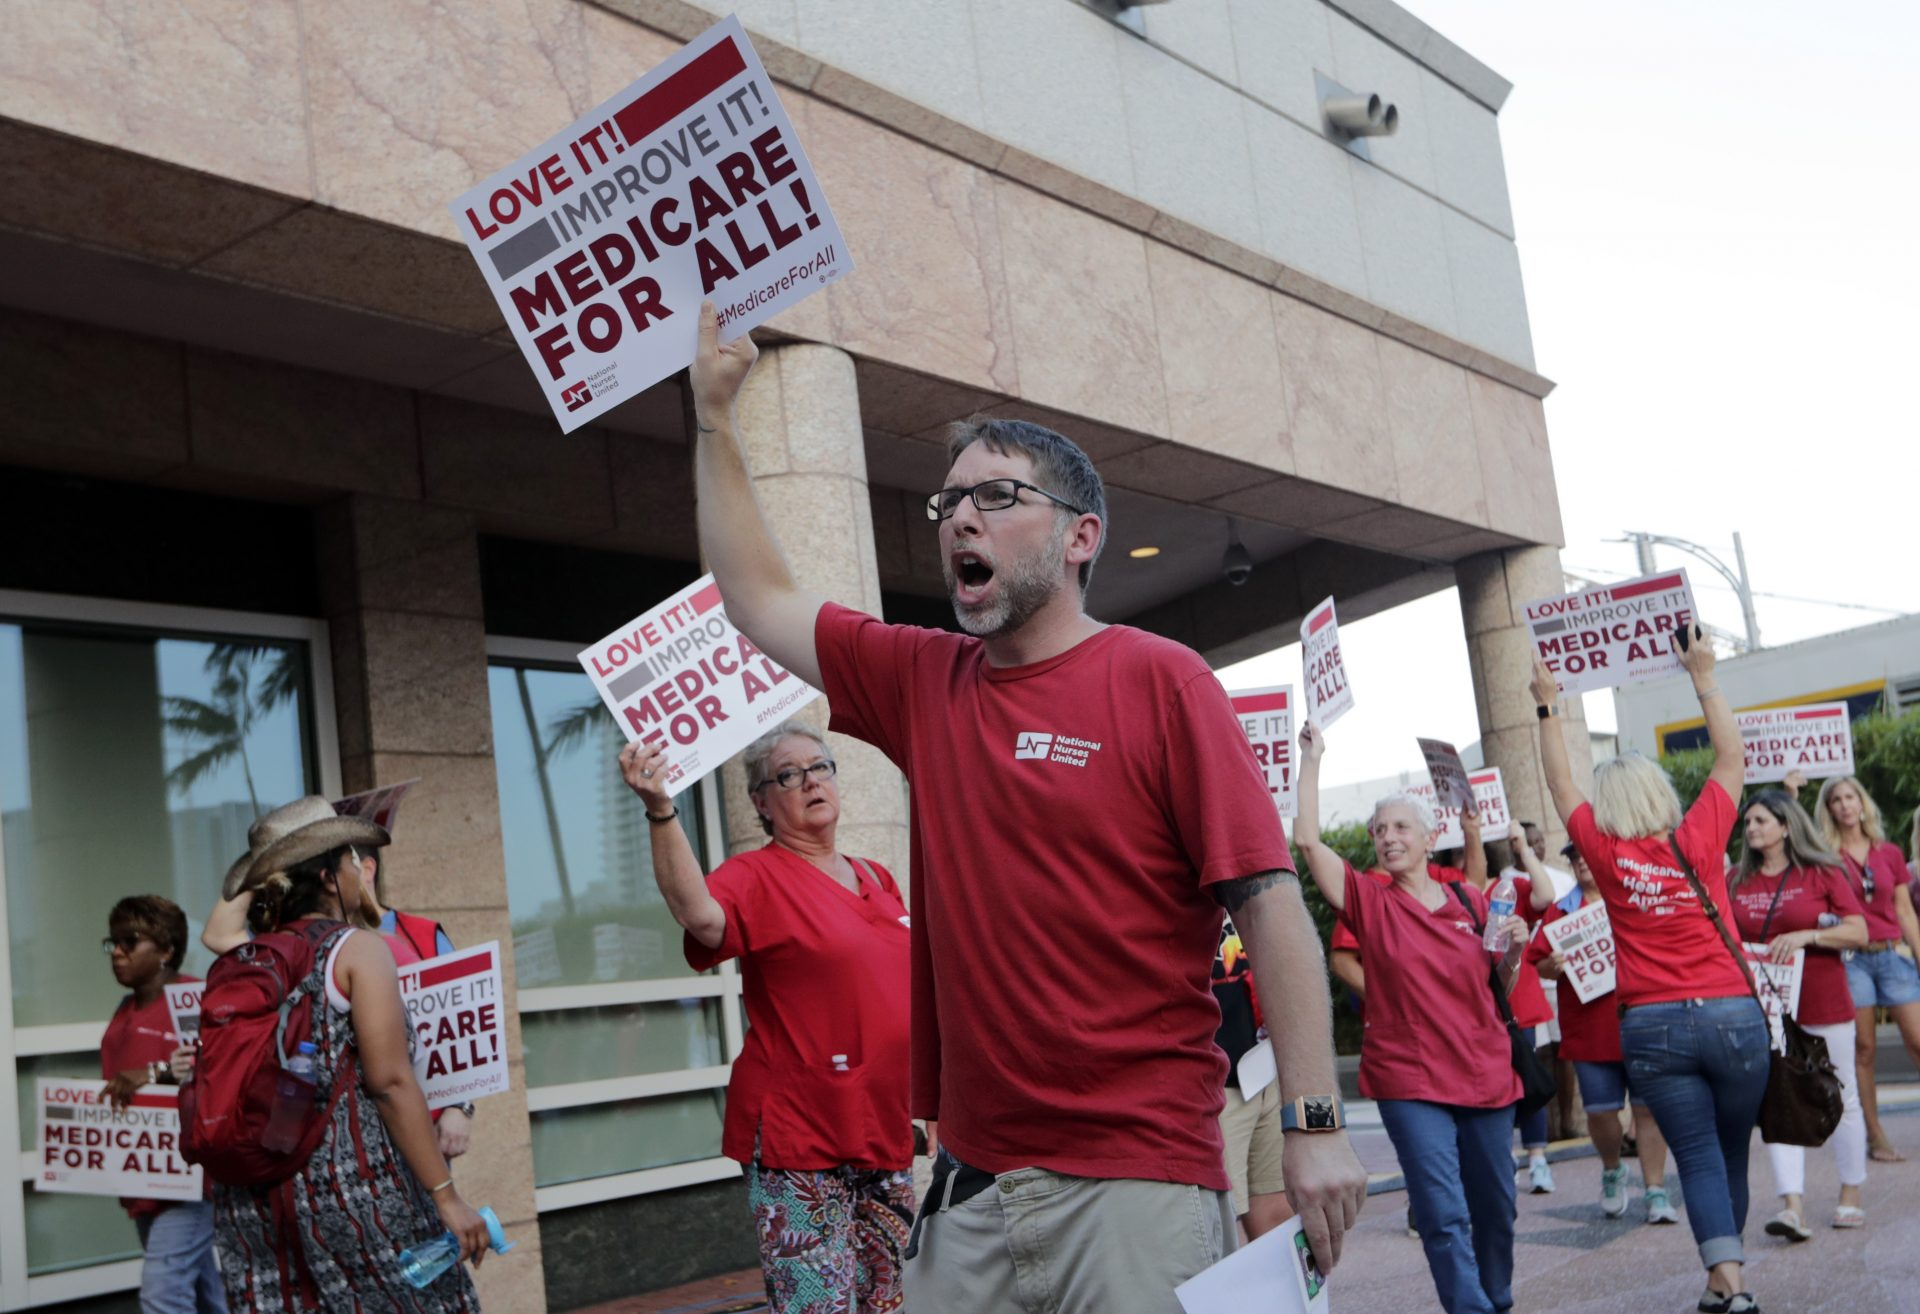 People with National Nurses United march in support of medicare for all, outside of the Knight Concert Hall at the Adrienne Arsht Center for the Performing Arts of Miami-Dade County, where a Democratic presidential debate is taking place, Wednesday, June 26, 2019, in Miami.